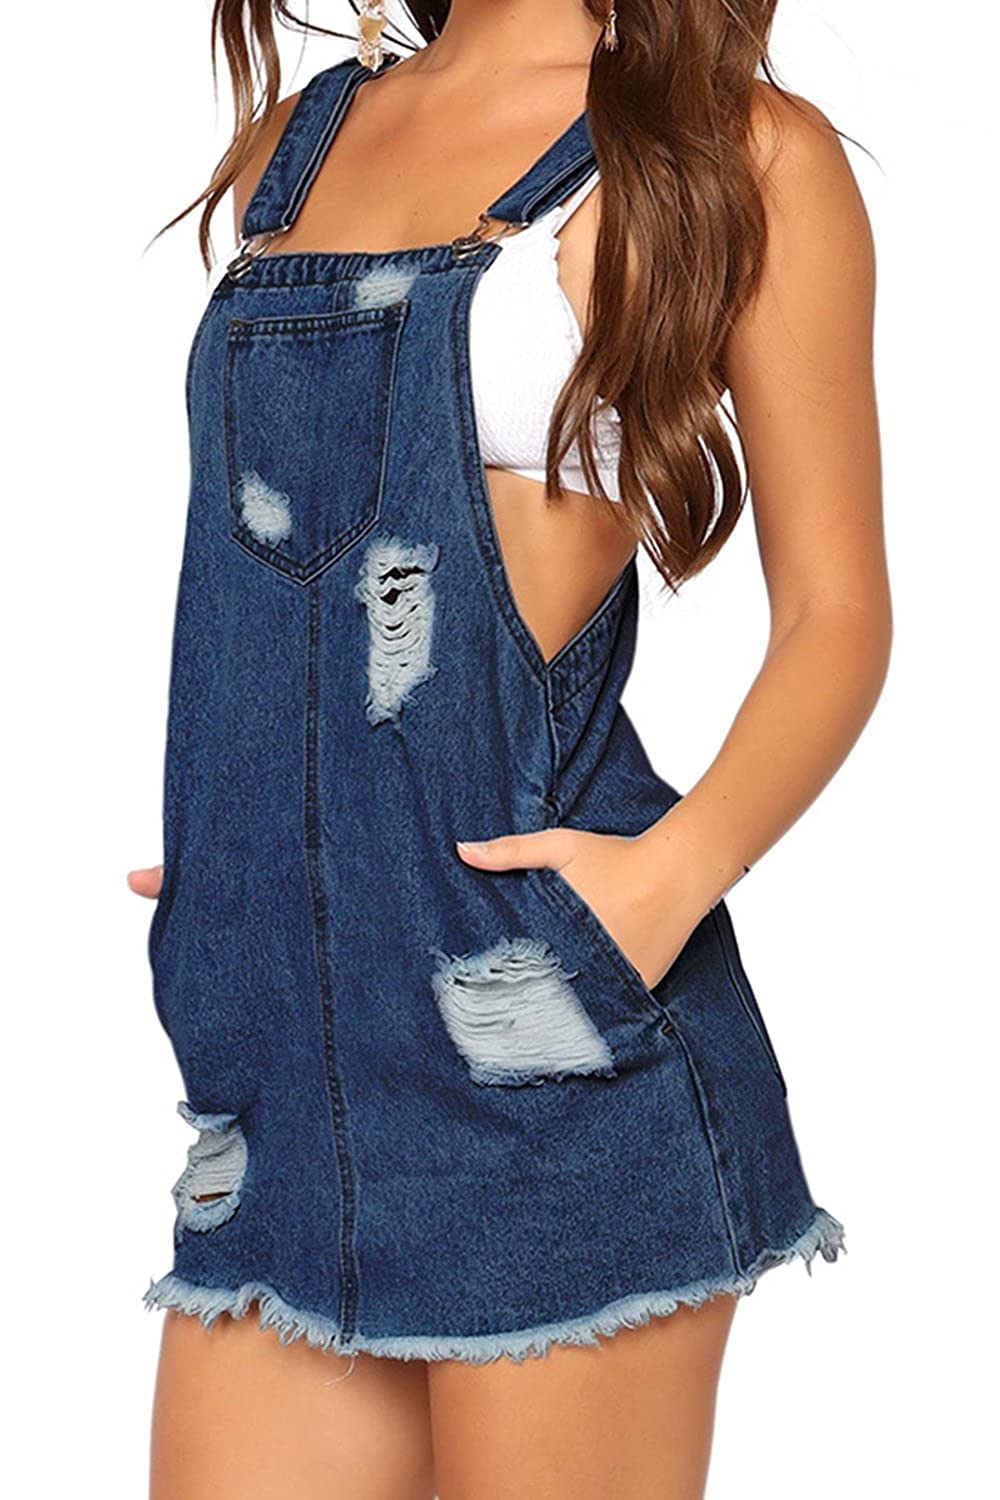 Zamtapary Donna Casuale Jeans Overall Denim Vestito Gonna ITVI1528